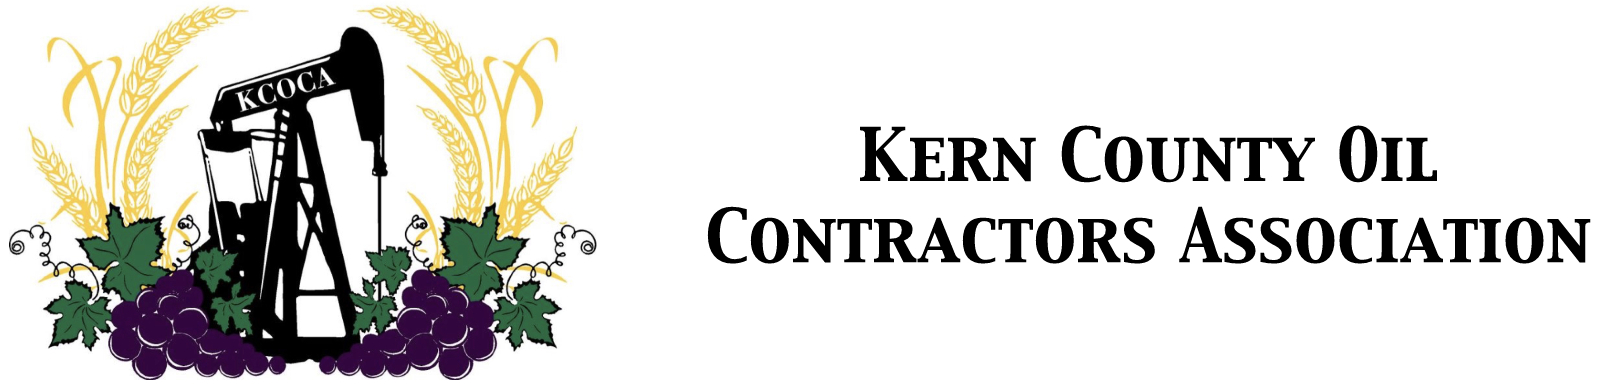 Kern County Oil Contractors Association